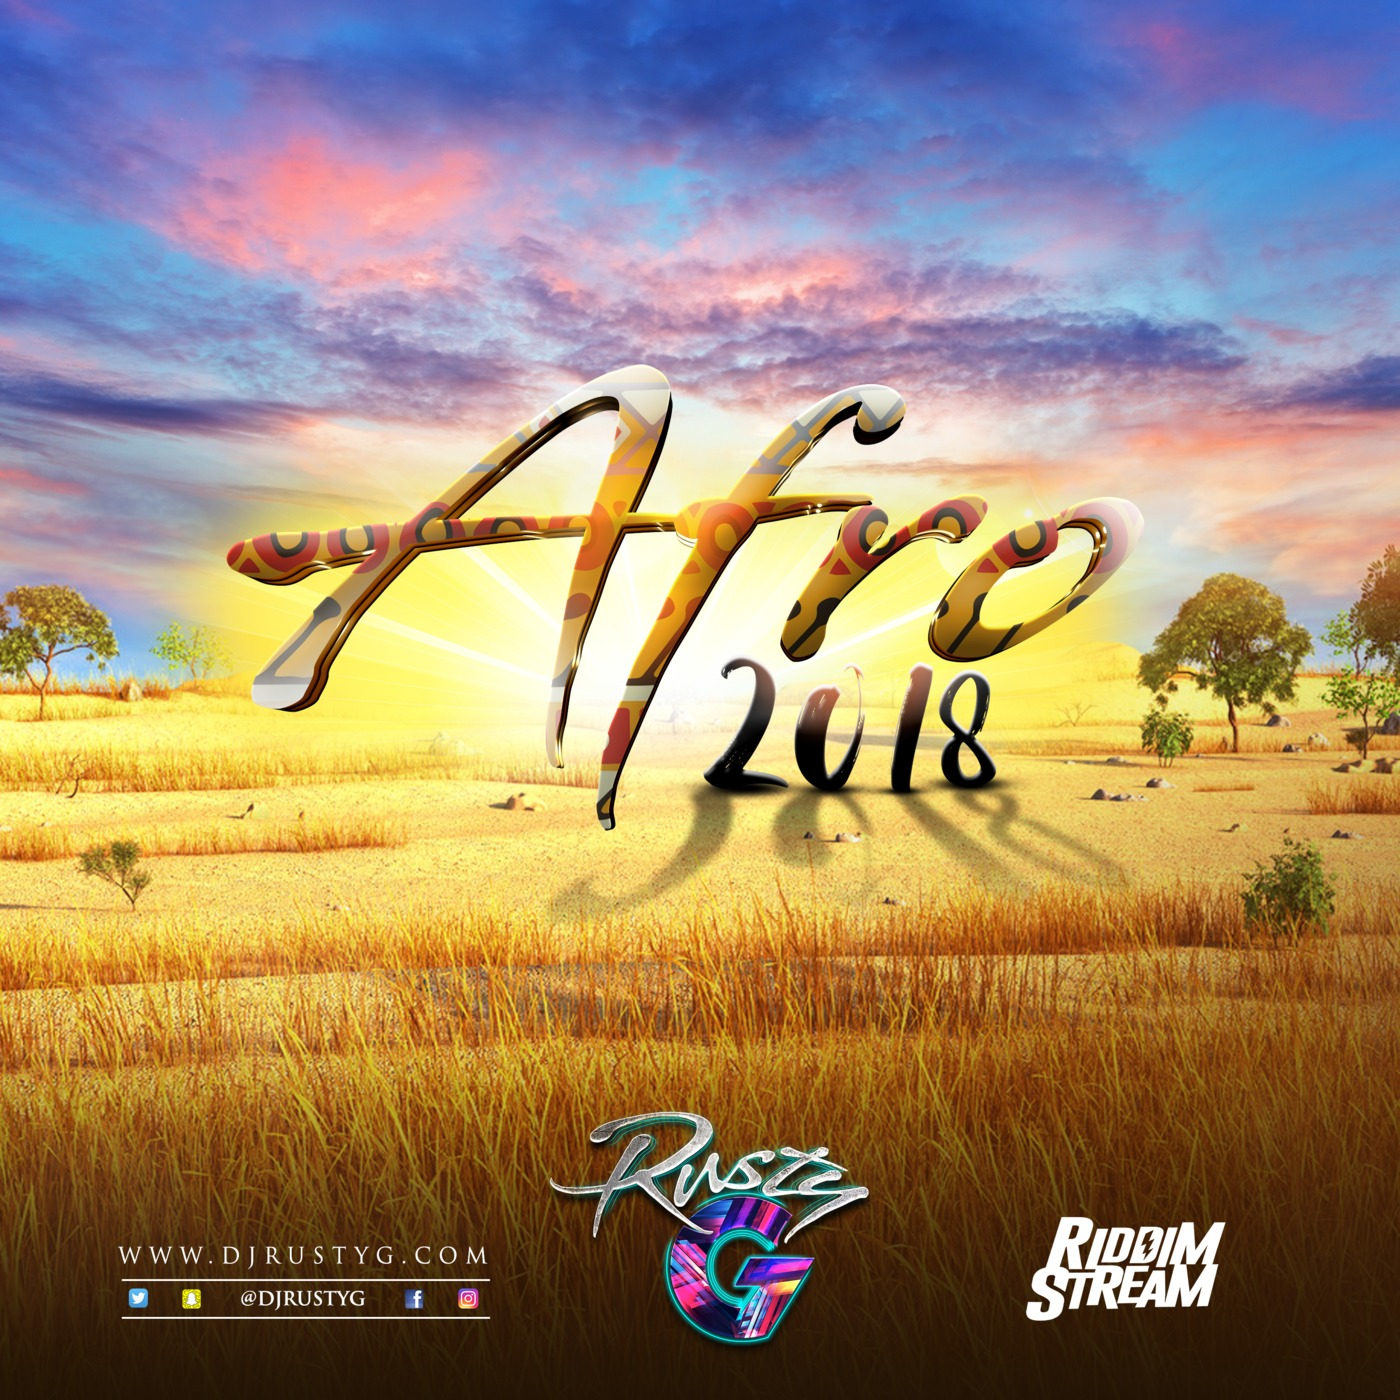 Afro 2018 (Afrobeat Mix) DJ Rusty G's podcast